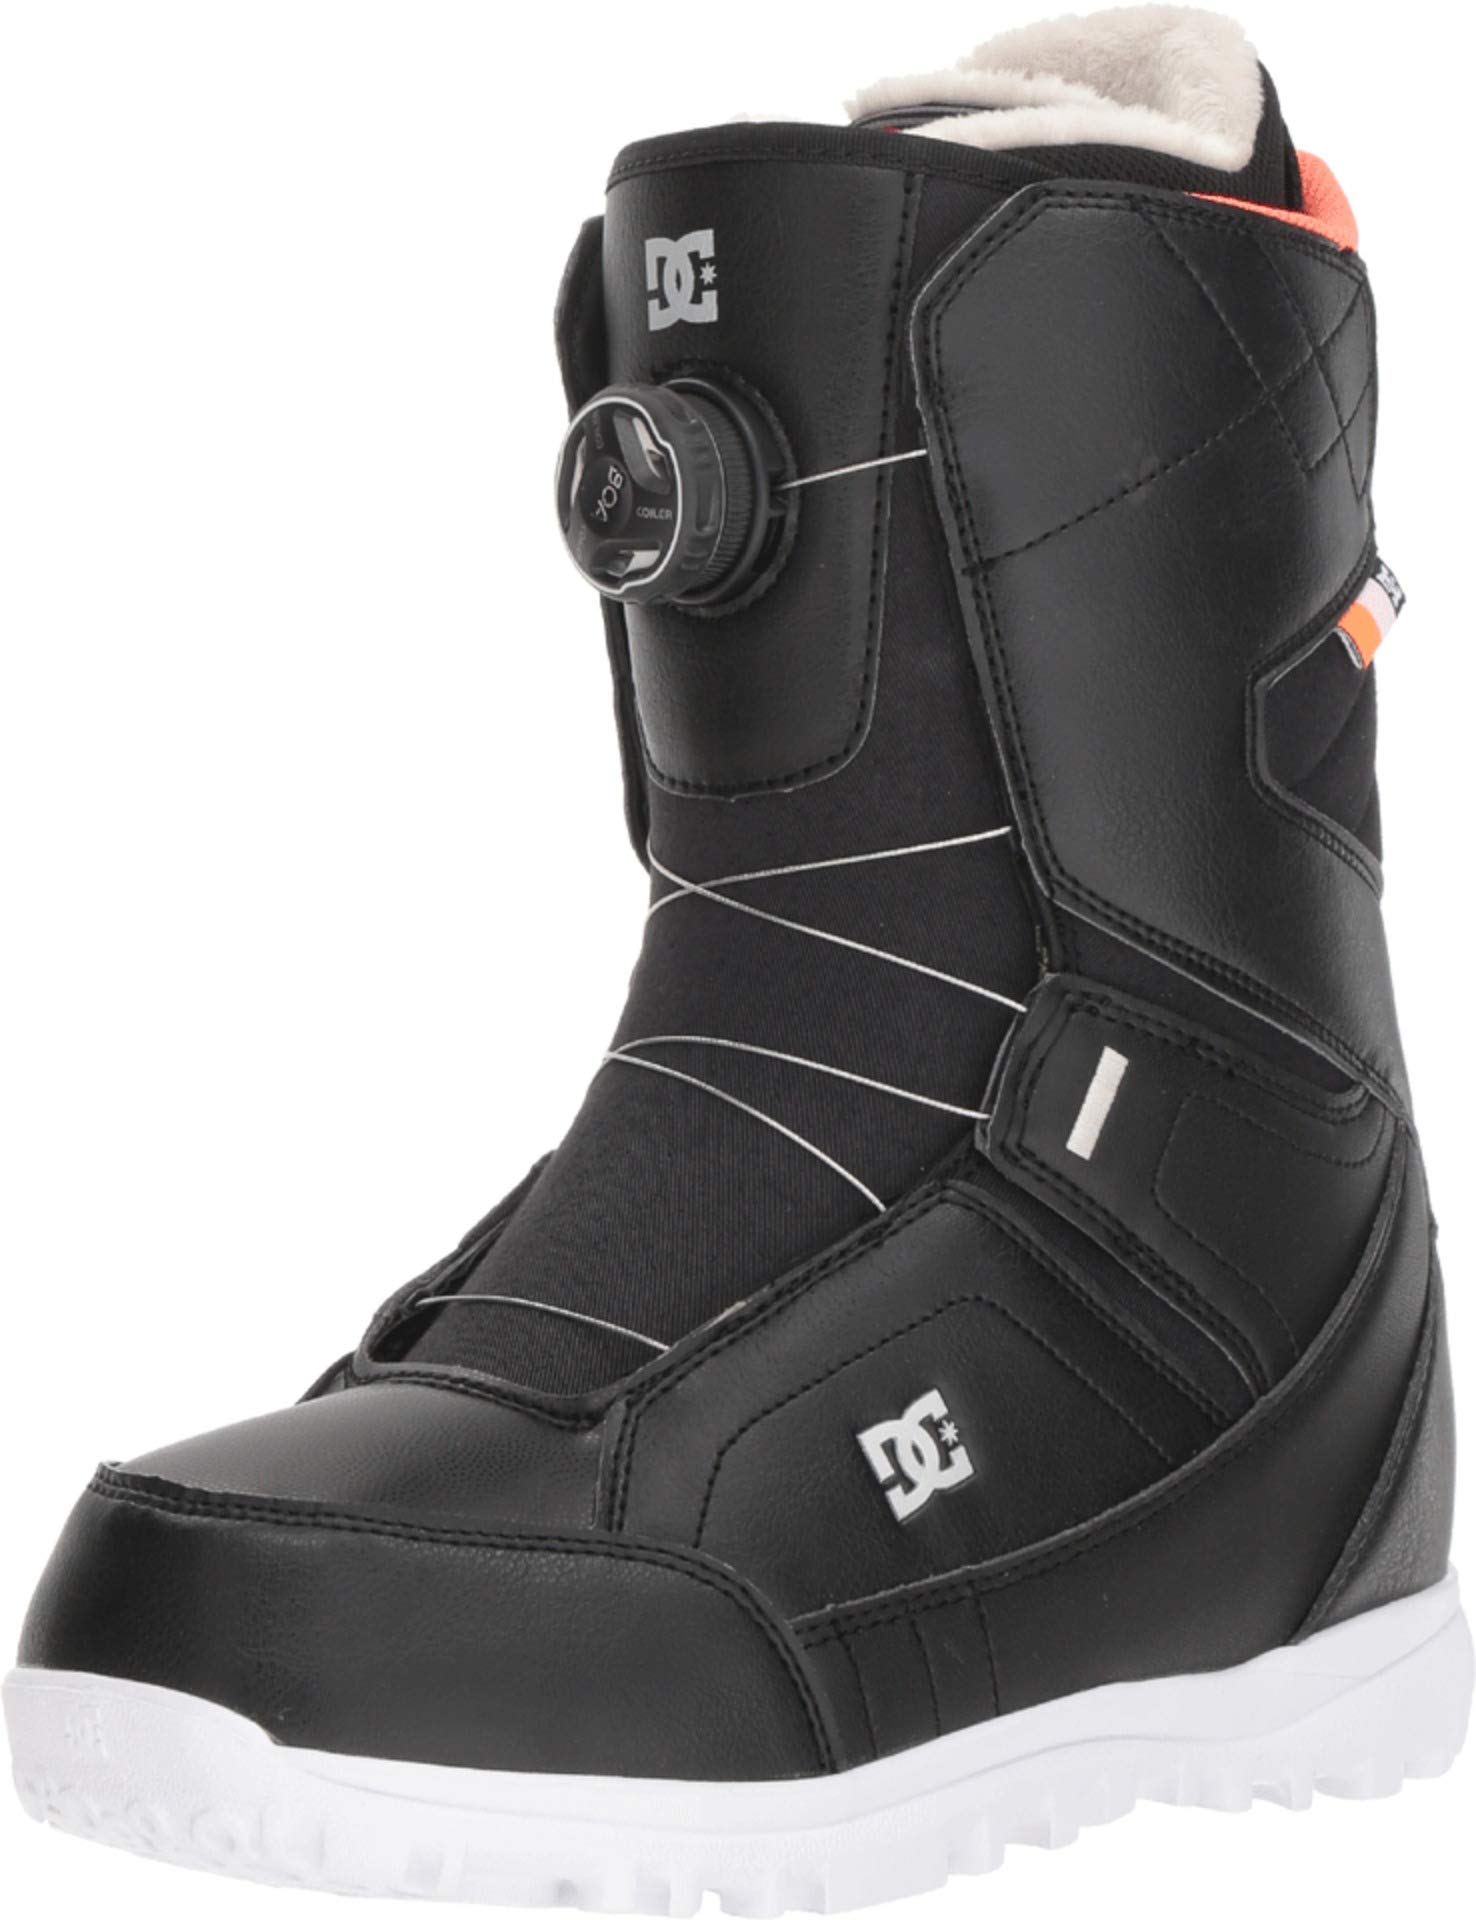 DC Search BOA Snowboard Boots Black Womens Sz 7 by DC